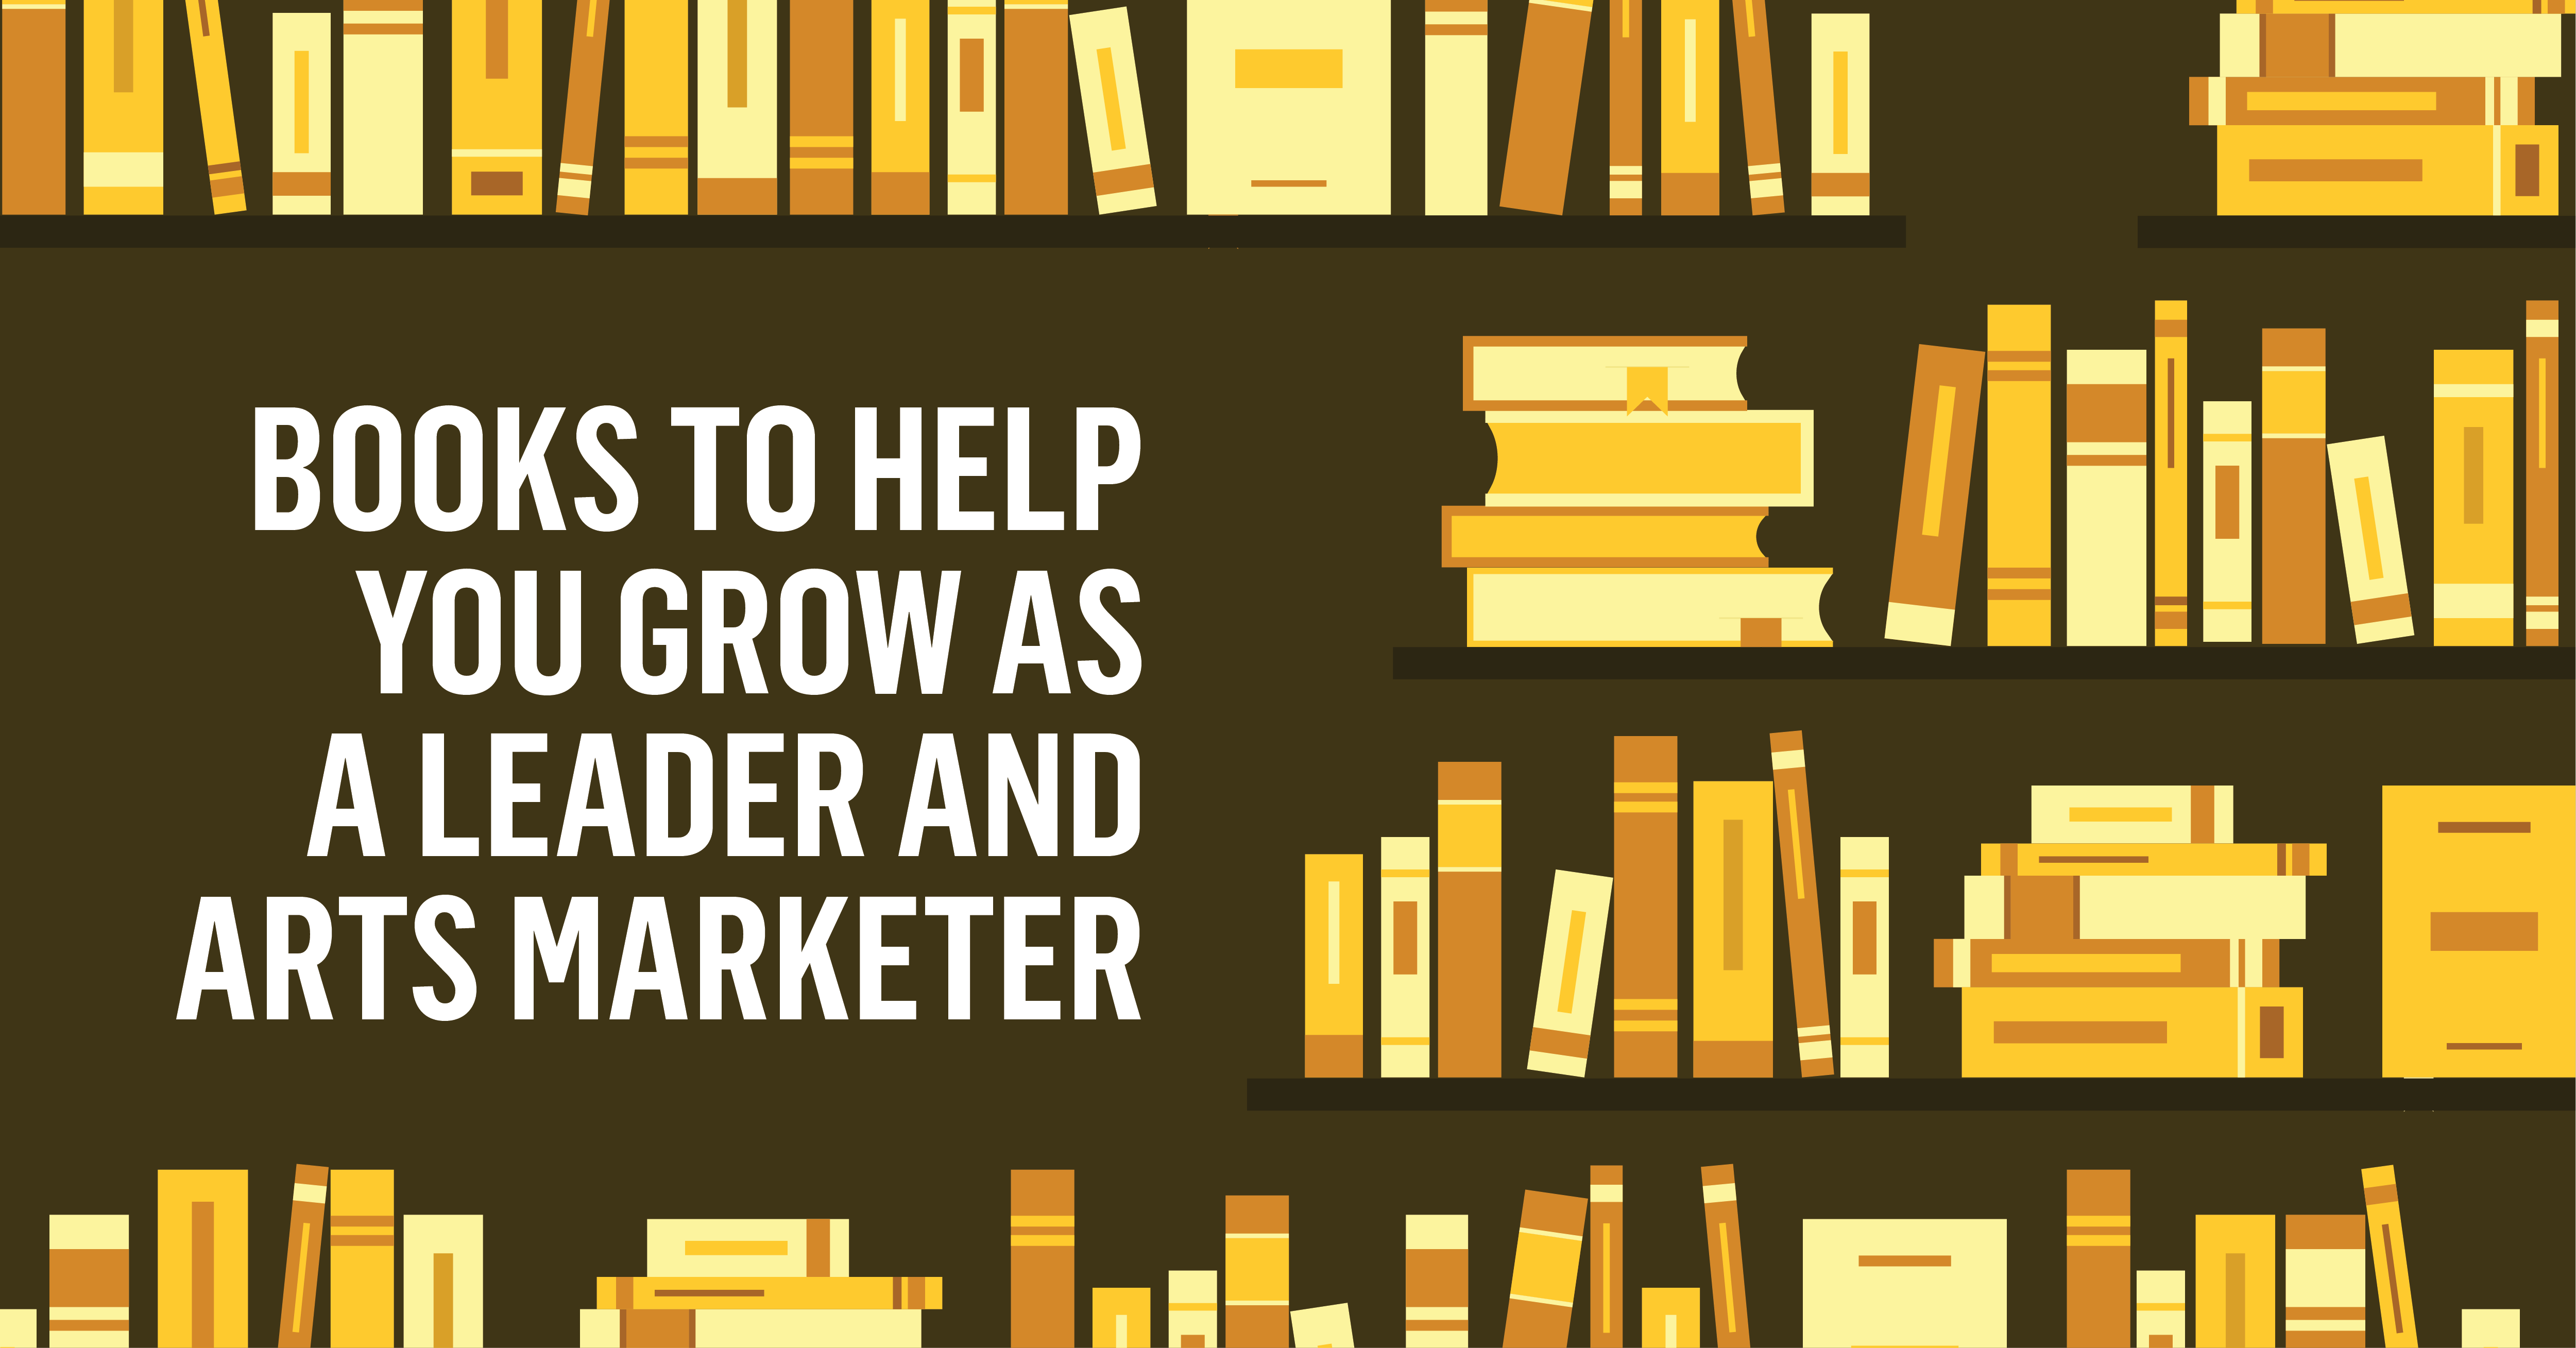 Books to Help You Grow as a Leader and Arts Marketer